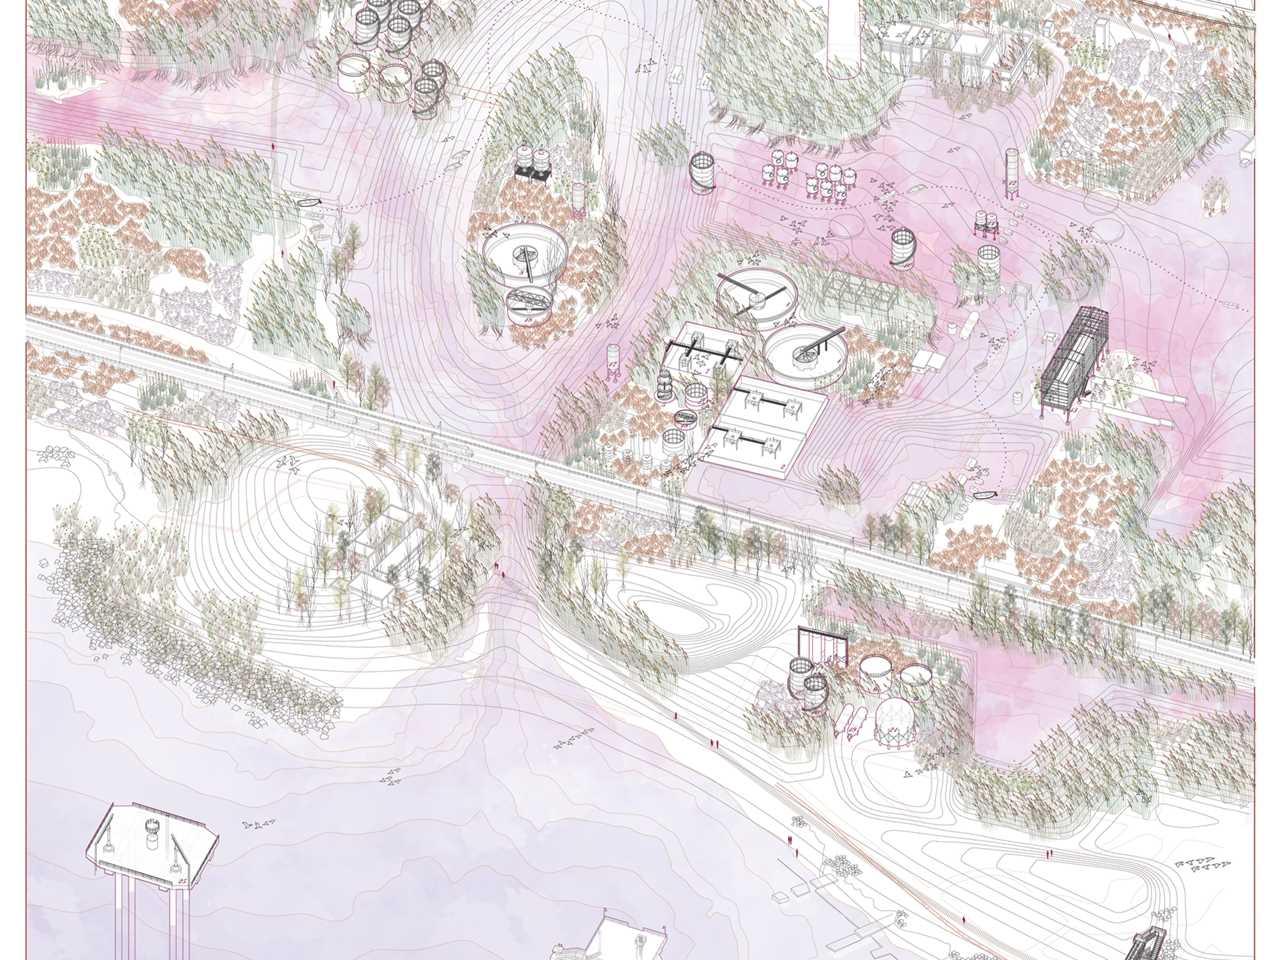 Global finalist entry 2015 - Anthropic Park: Freshwater ecological reserve and …